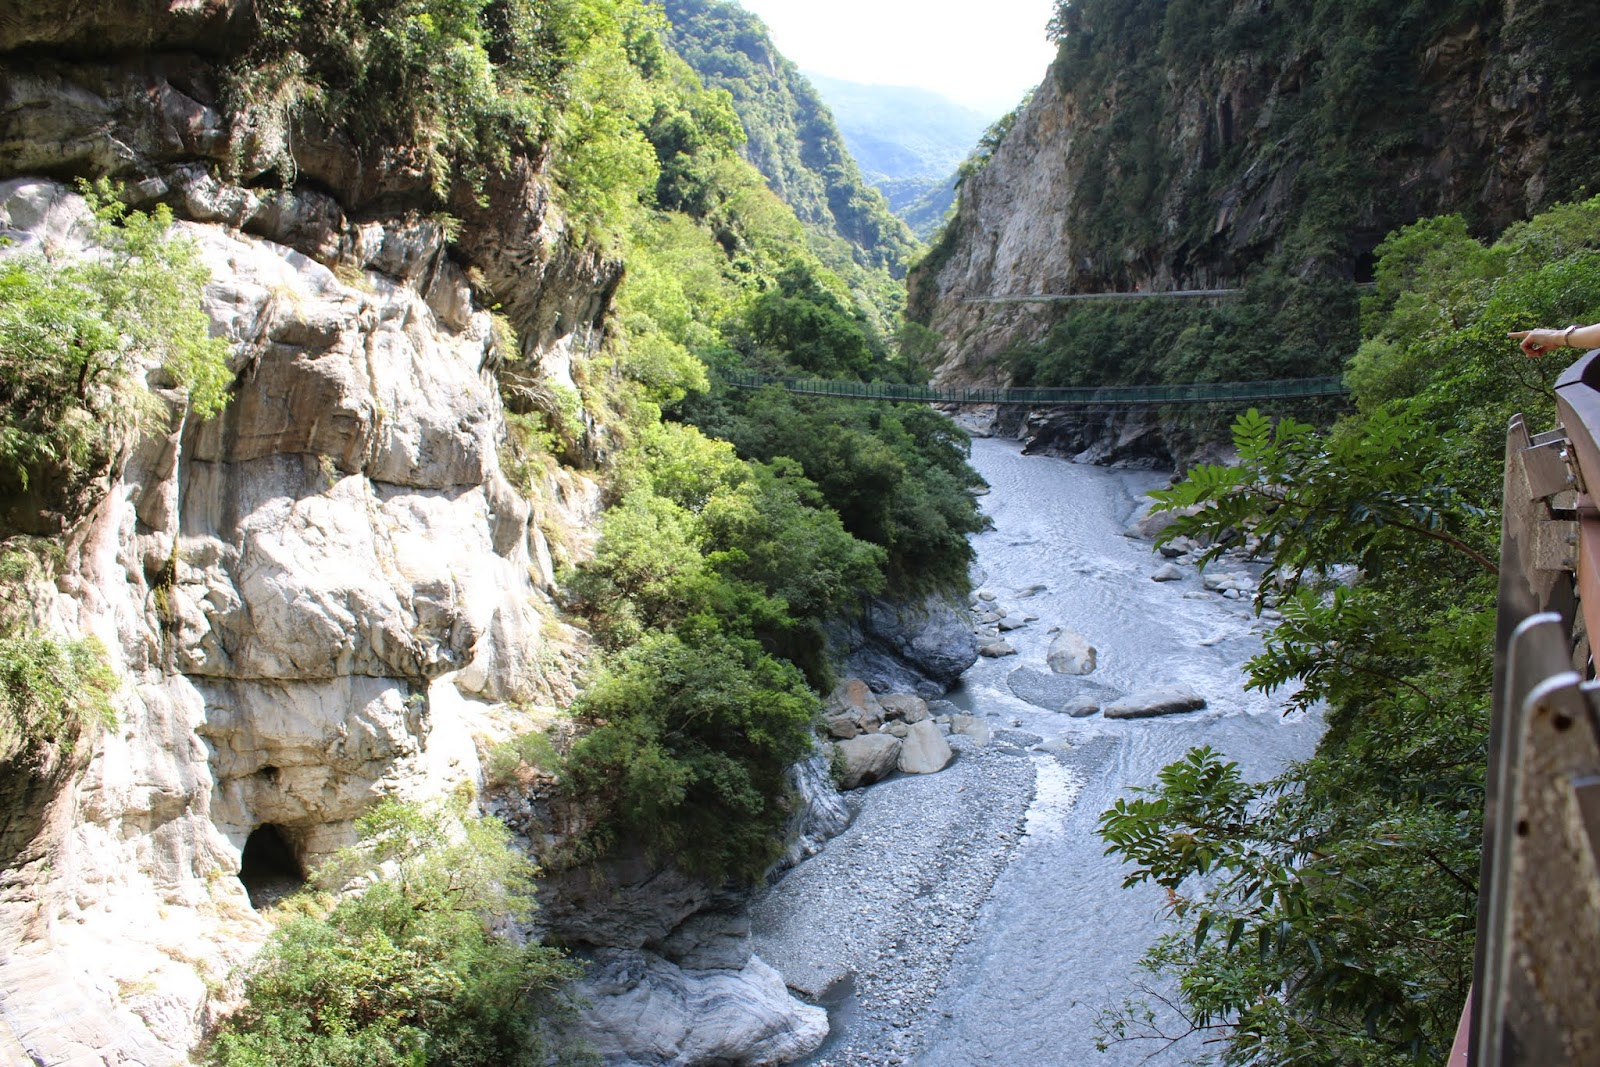 Looking at dashing stream of Liwu River while pointing at beautiful marble walls at Swallow Grotto of Taroko Gorge National Park in Hualien, Taiwan